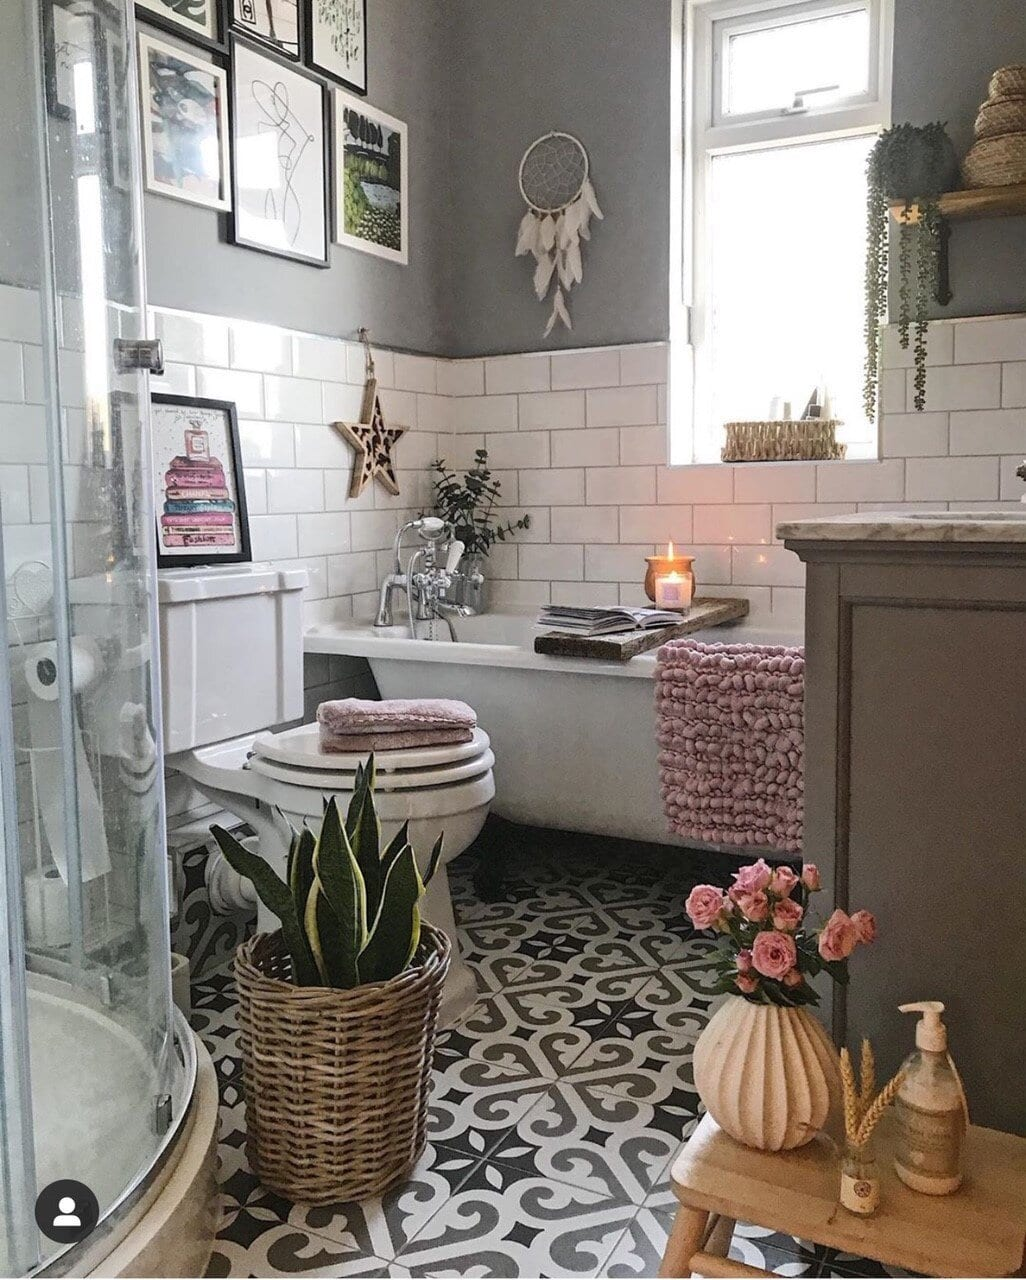 One of the questions I get asked the most is the dimensions of my bathroom. So I created a dedicated Instagram and blog post around our bathroom renovation .